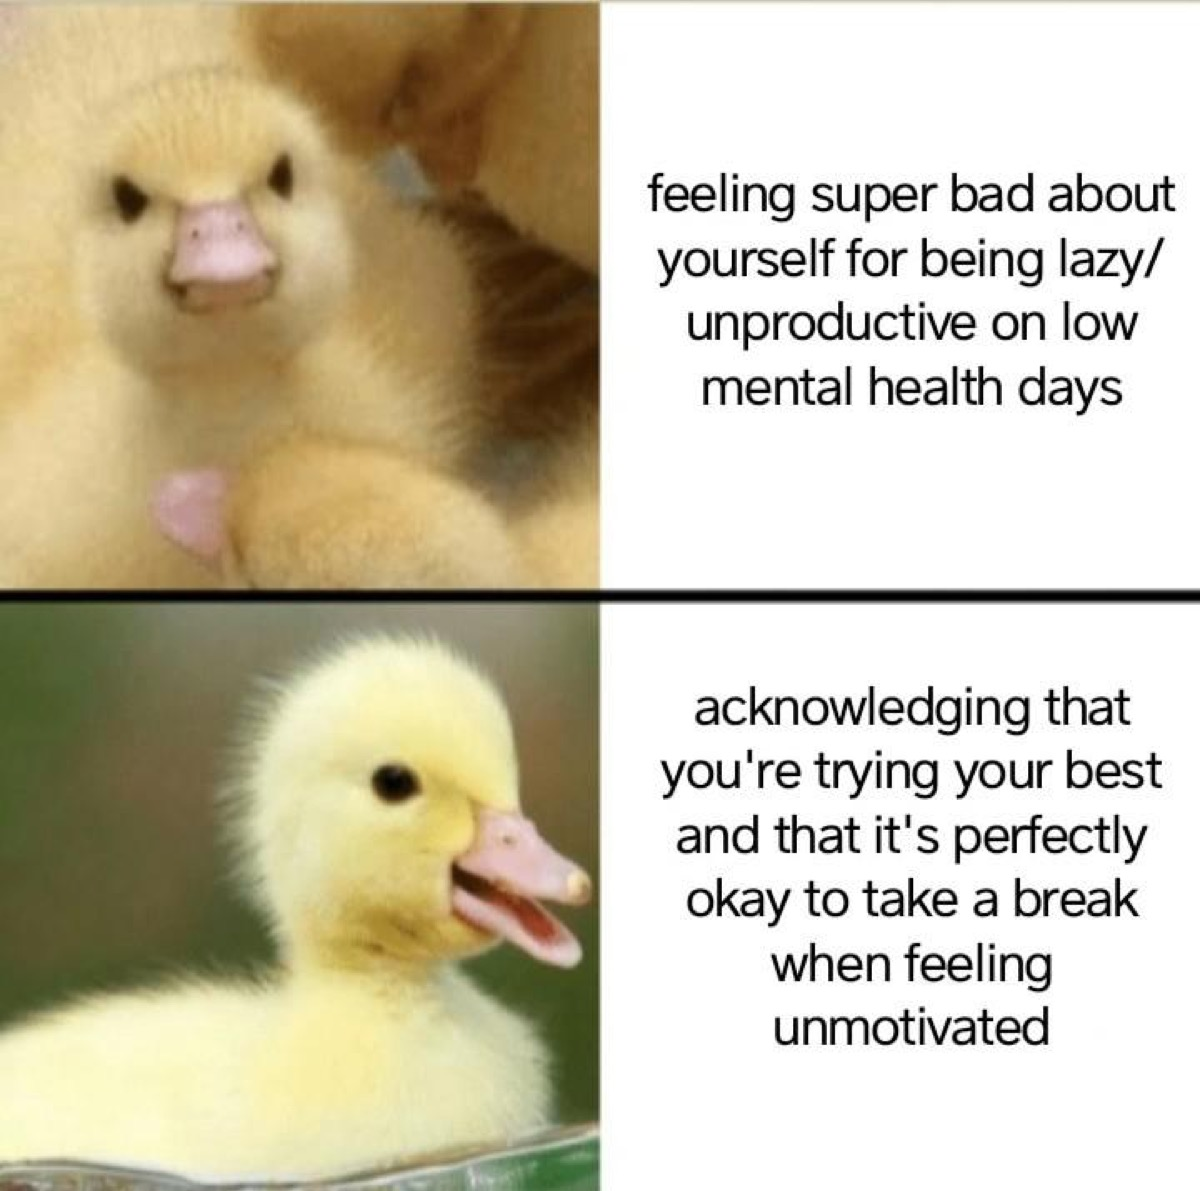 """Photo of angry duckling with caption """"Feeling super bad about yourself for being lazy/unproductive on low mental health days"""" and photo of happy duckling with caption, """"Acknowledging that you're trying your best and that it's perfectly okay to take a break when feeing unmotivated."""""""